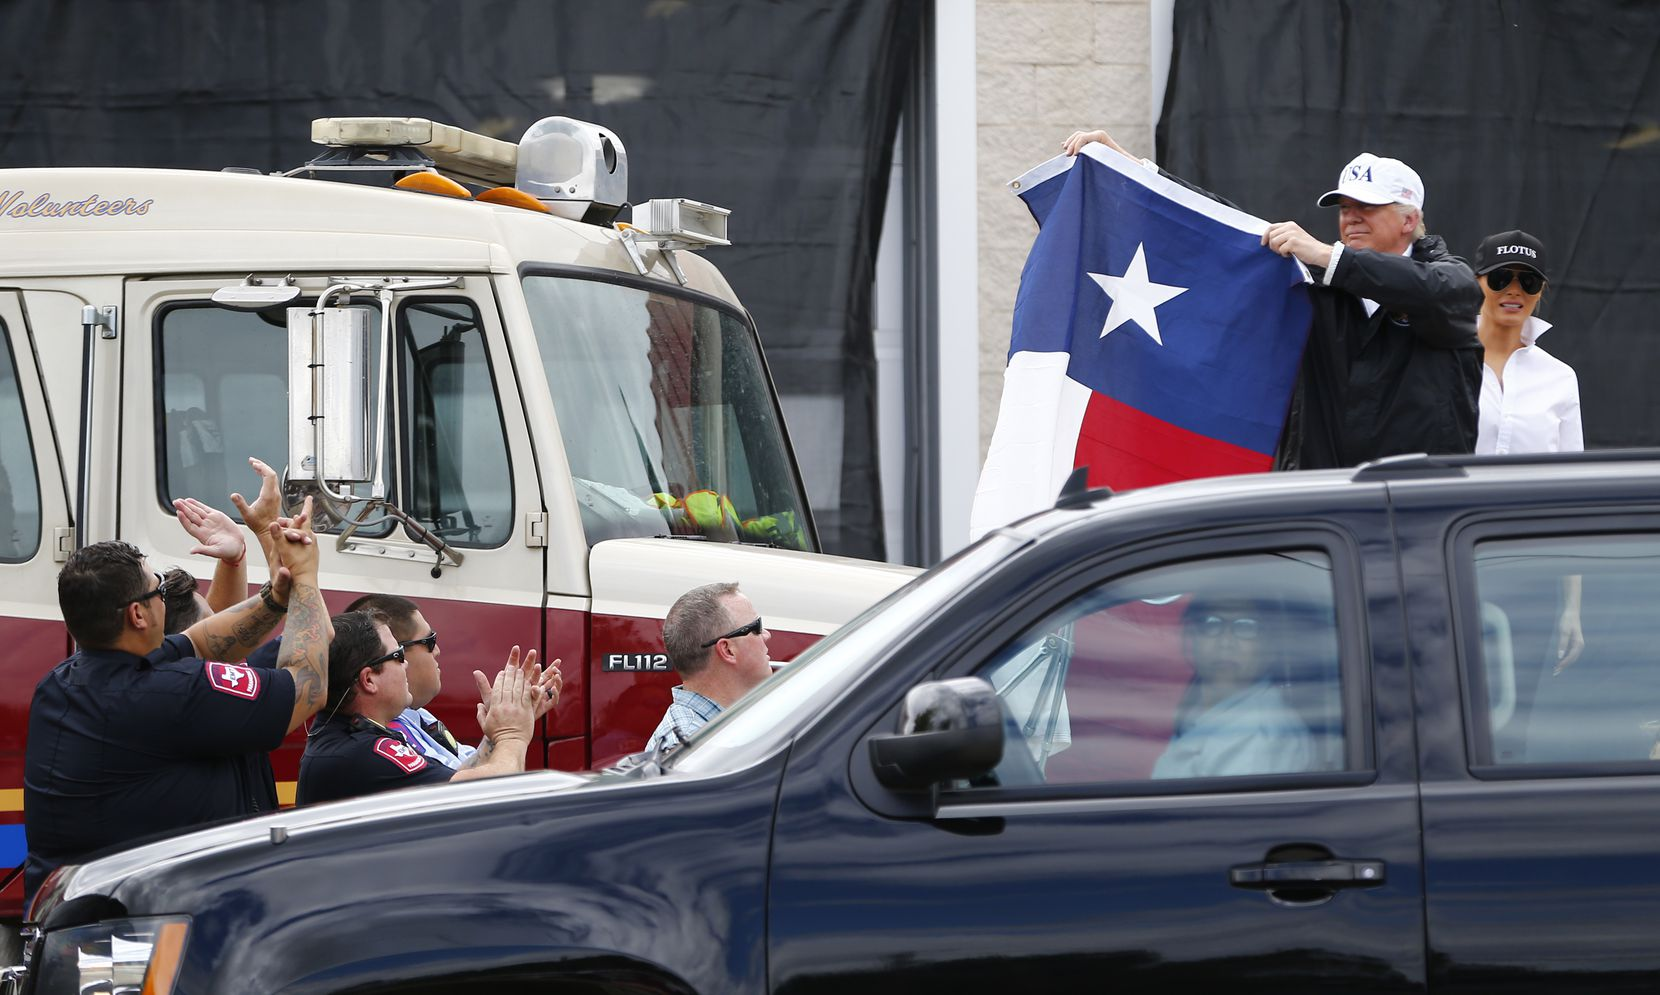 President Donald Trump holds up a Texas flag after attending a briefing from dederal, state and local organizations after Hurricane Harvey at Annaville Fire Station 5 in Corpus Christi, Texas on Aug. 29, 2017.